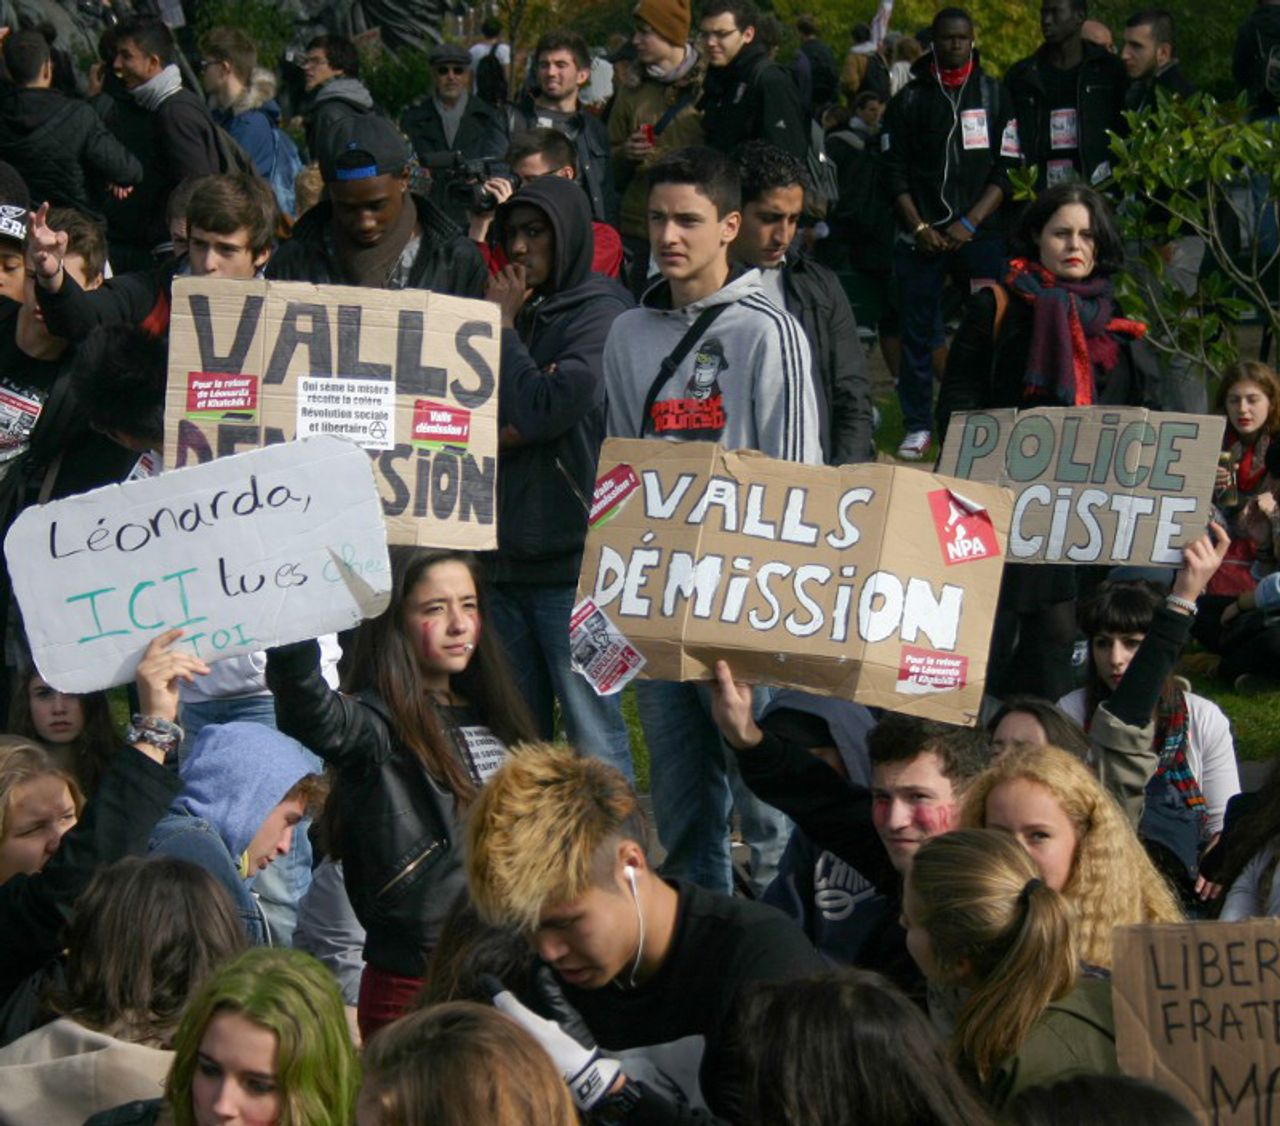 Demonstrating students'placards call for sacking Minister Valls, and say 'Leonarda, you belong here', and 'Liberty, equality, fraternity'